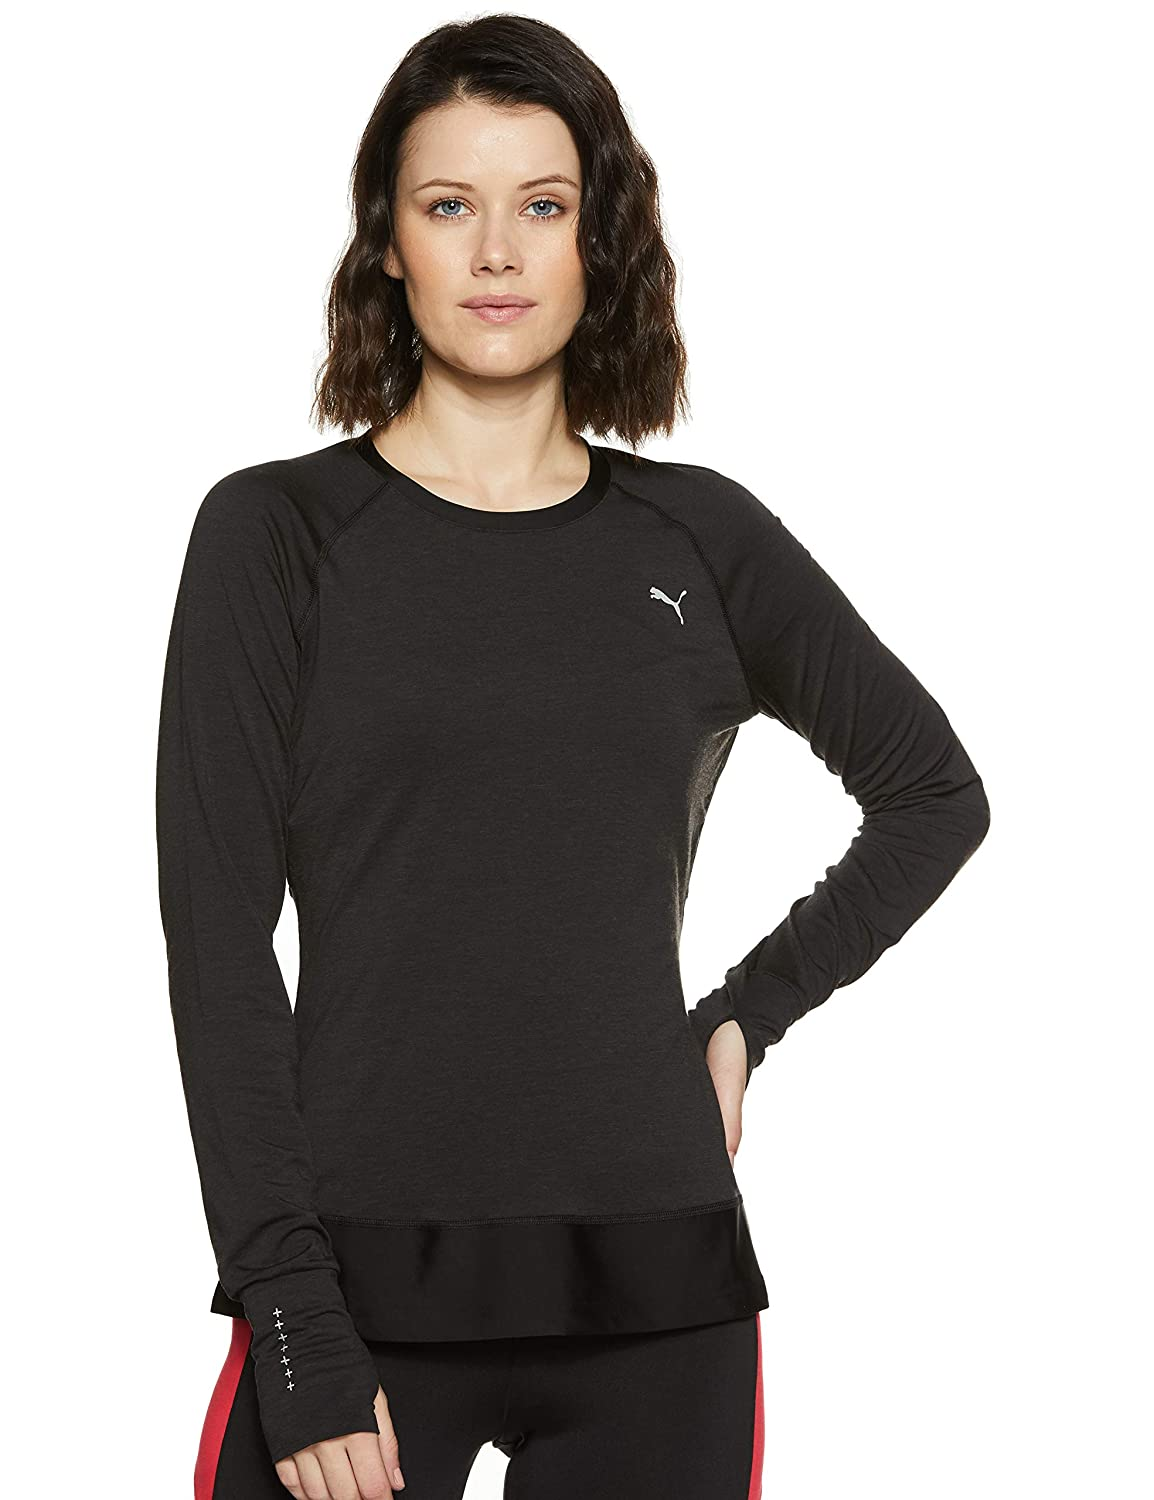 PUMA Damen L/S Winter Tee W T-Shirt